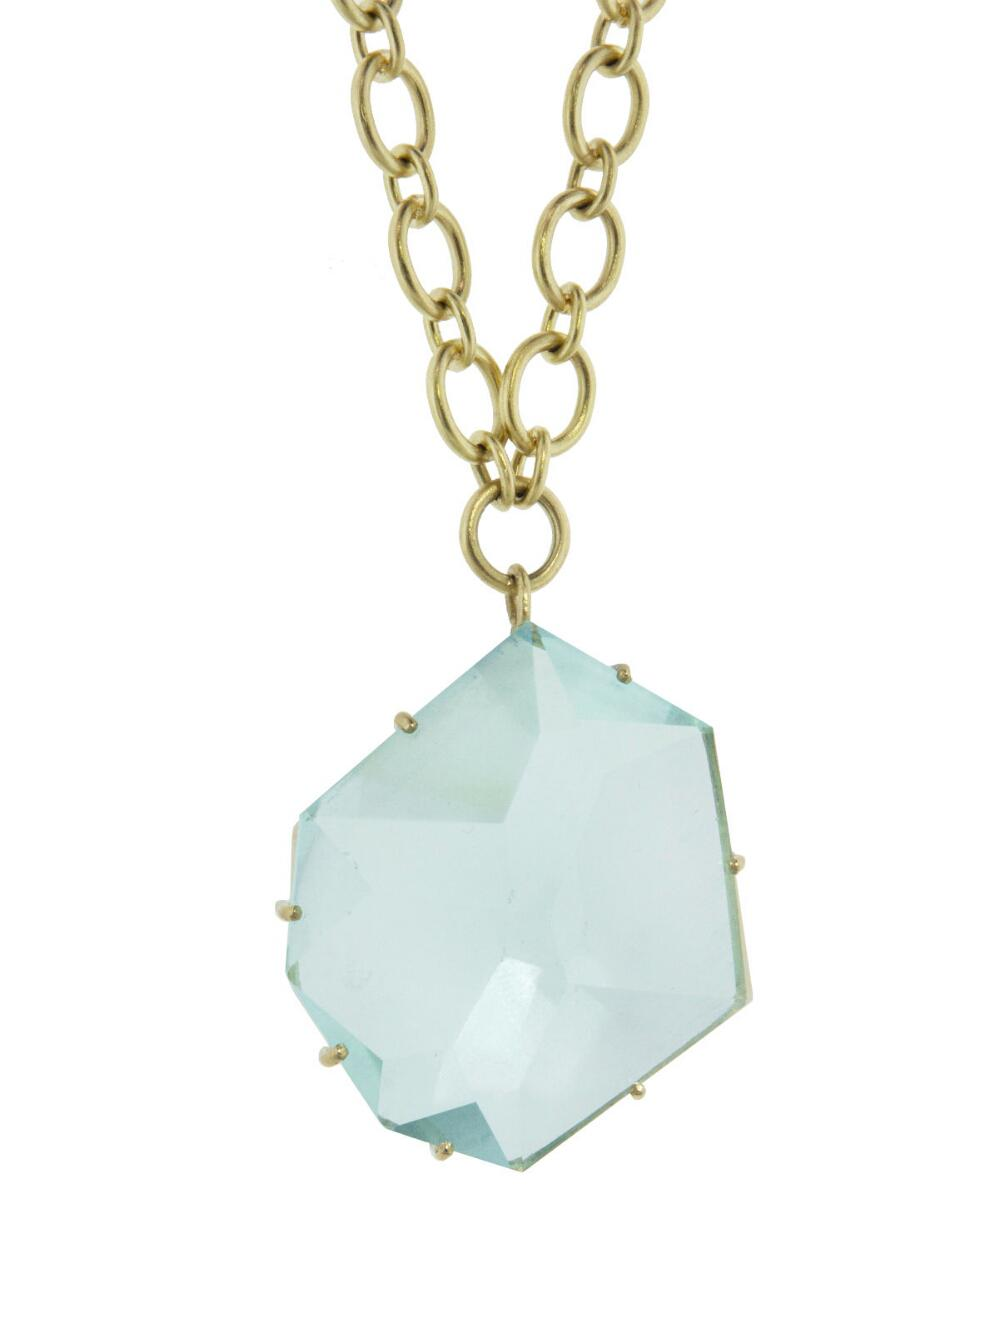 Lyst irene neuwirth one of a kind large aquamarine necklace irene neuwirth womens one of a kind large aquamarine necklace aloadofball Image collections